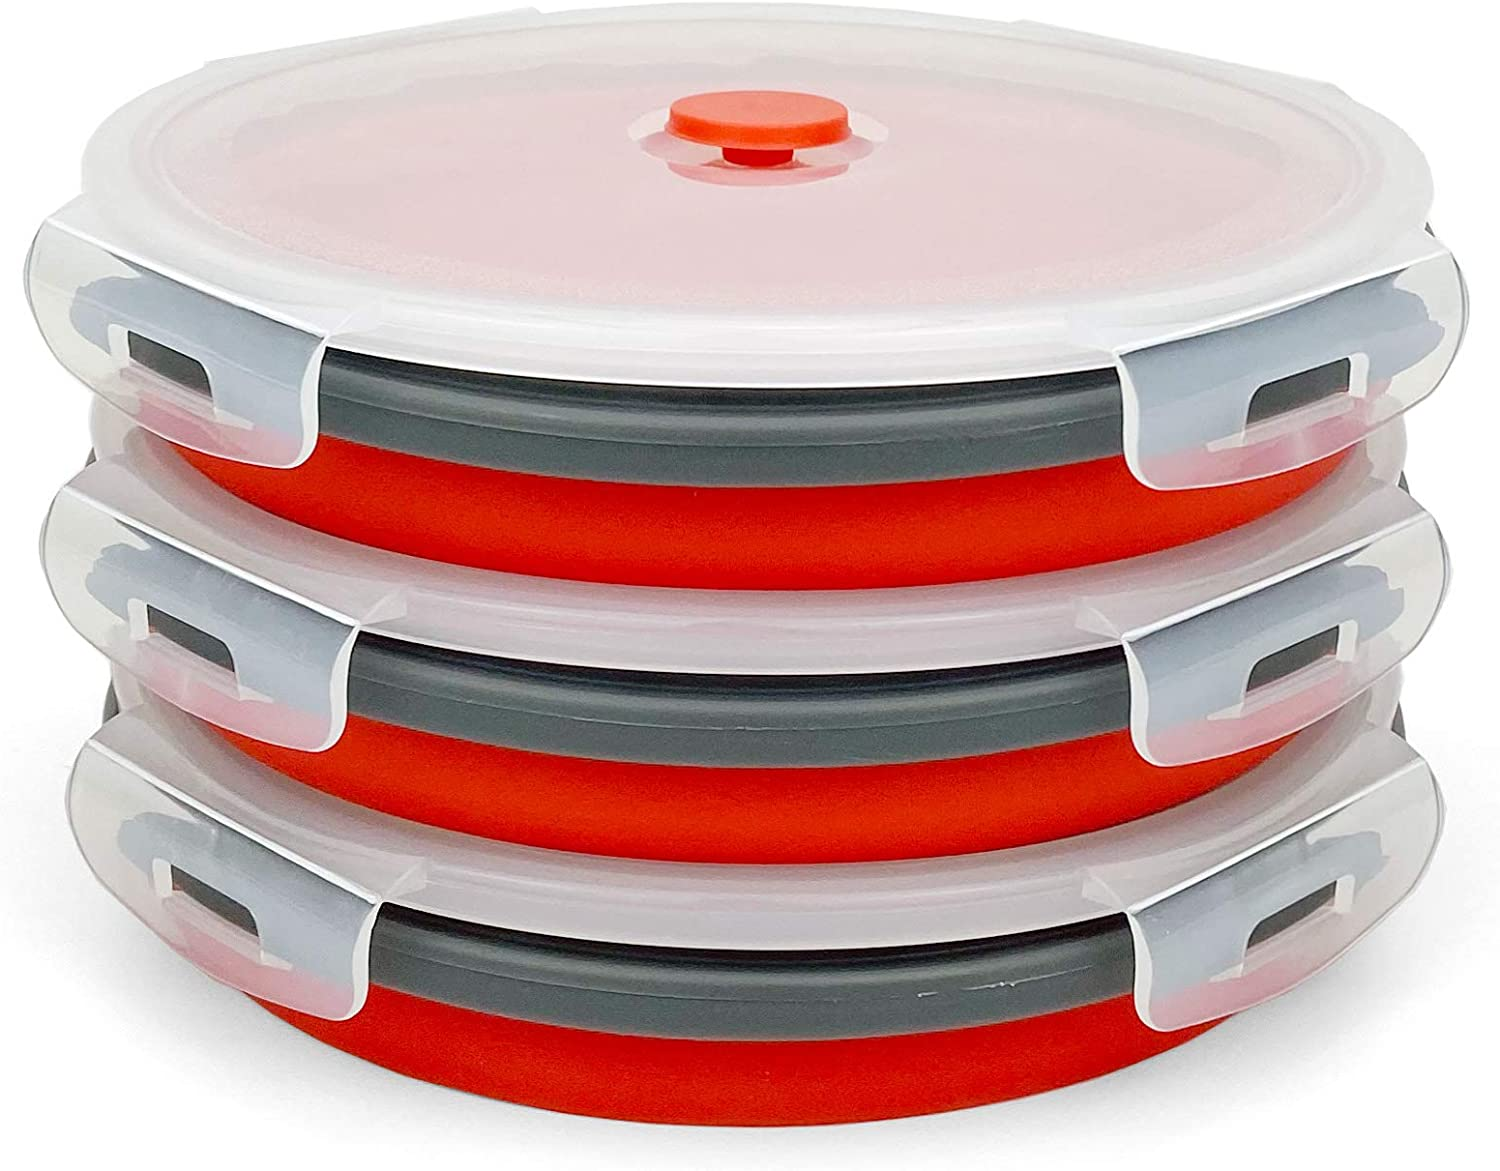 CARTINTS 1200ml Large Collapsible Meal Prep Containers, Reusable Silicone Food Storage Containers, Stackable Fridge Storage Containers, With Leakproof Lids, Microwave and Freezer Safe, Red